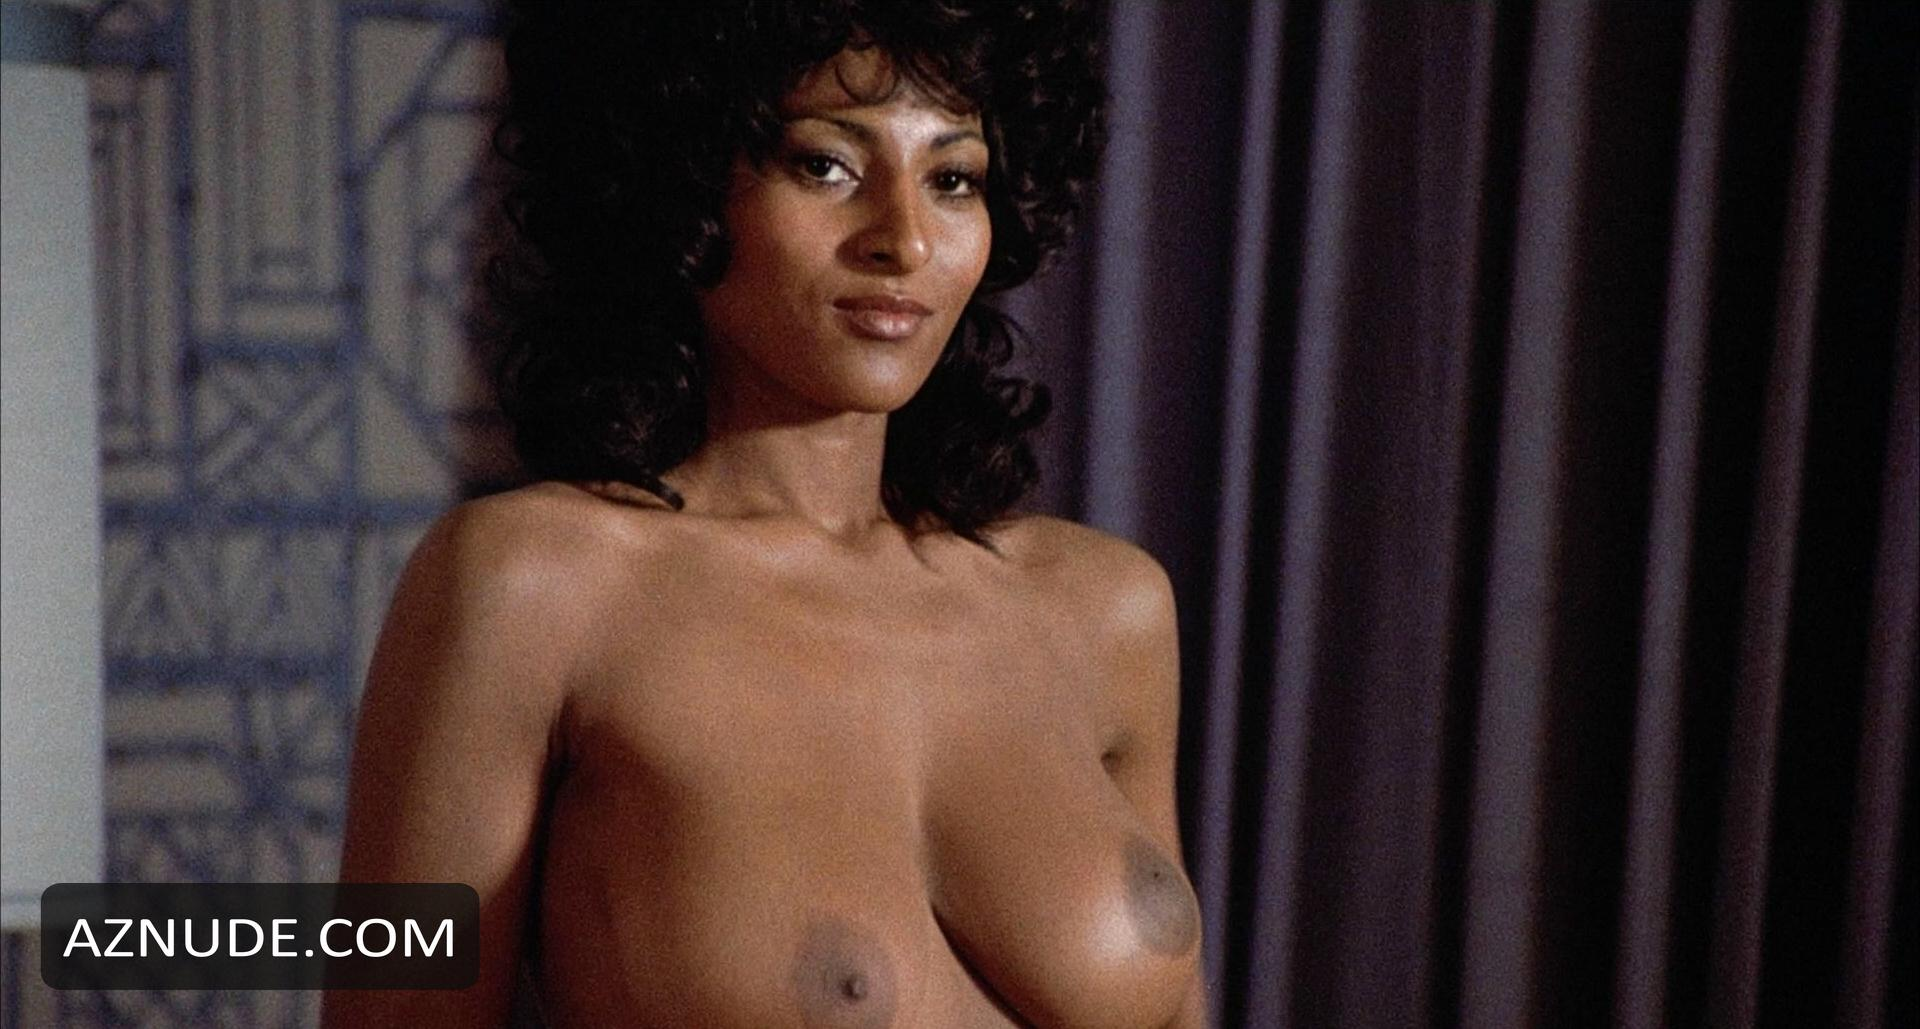 Consider, that Pam grier sexy red history!